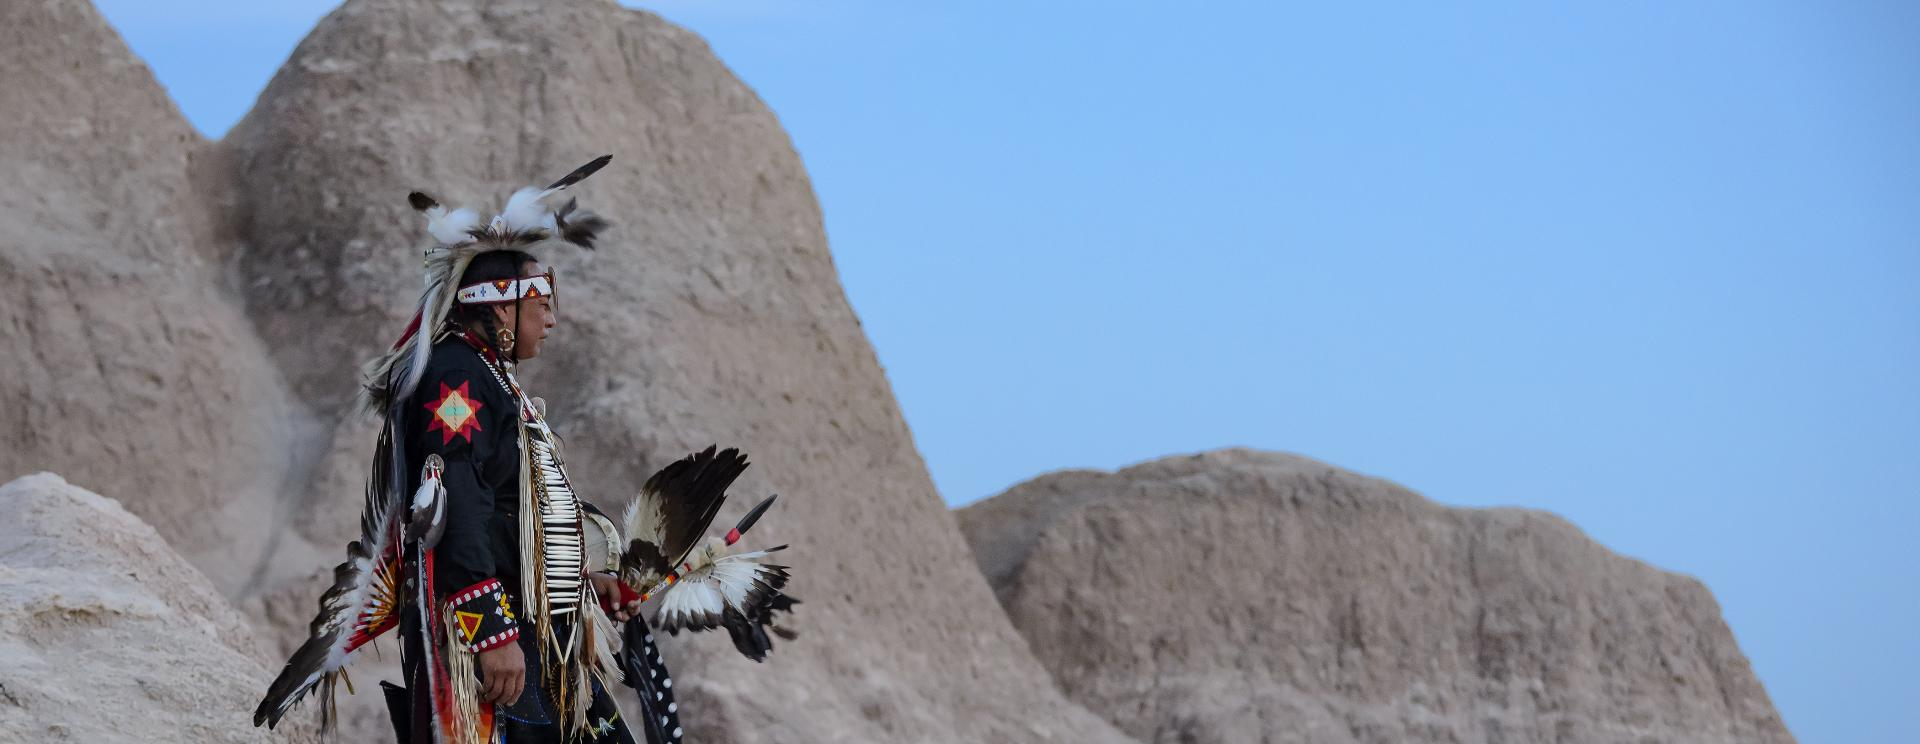 My Powerful Tour of the Pine Ridge Reservation